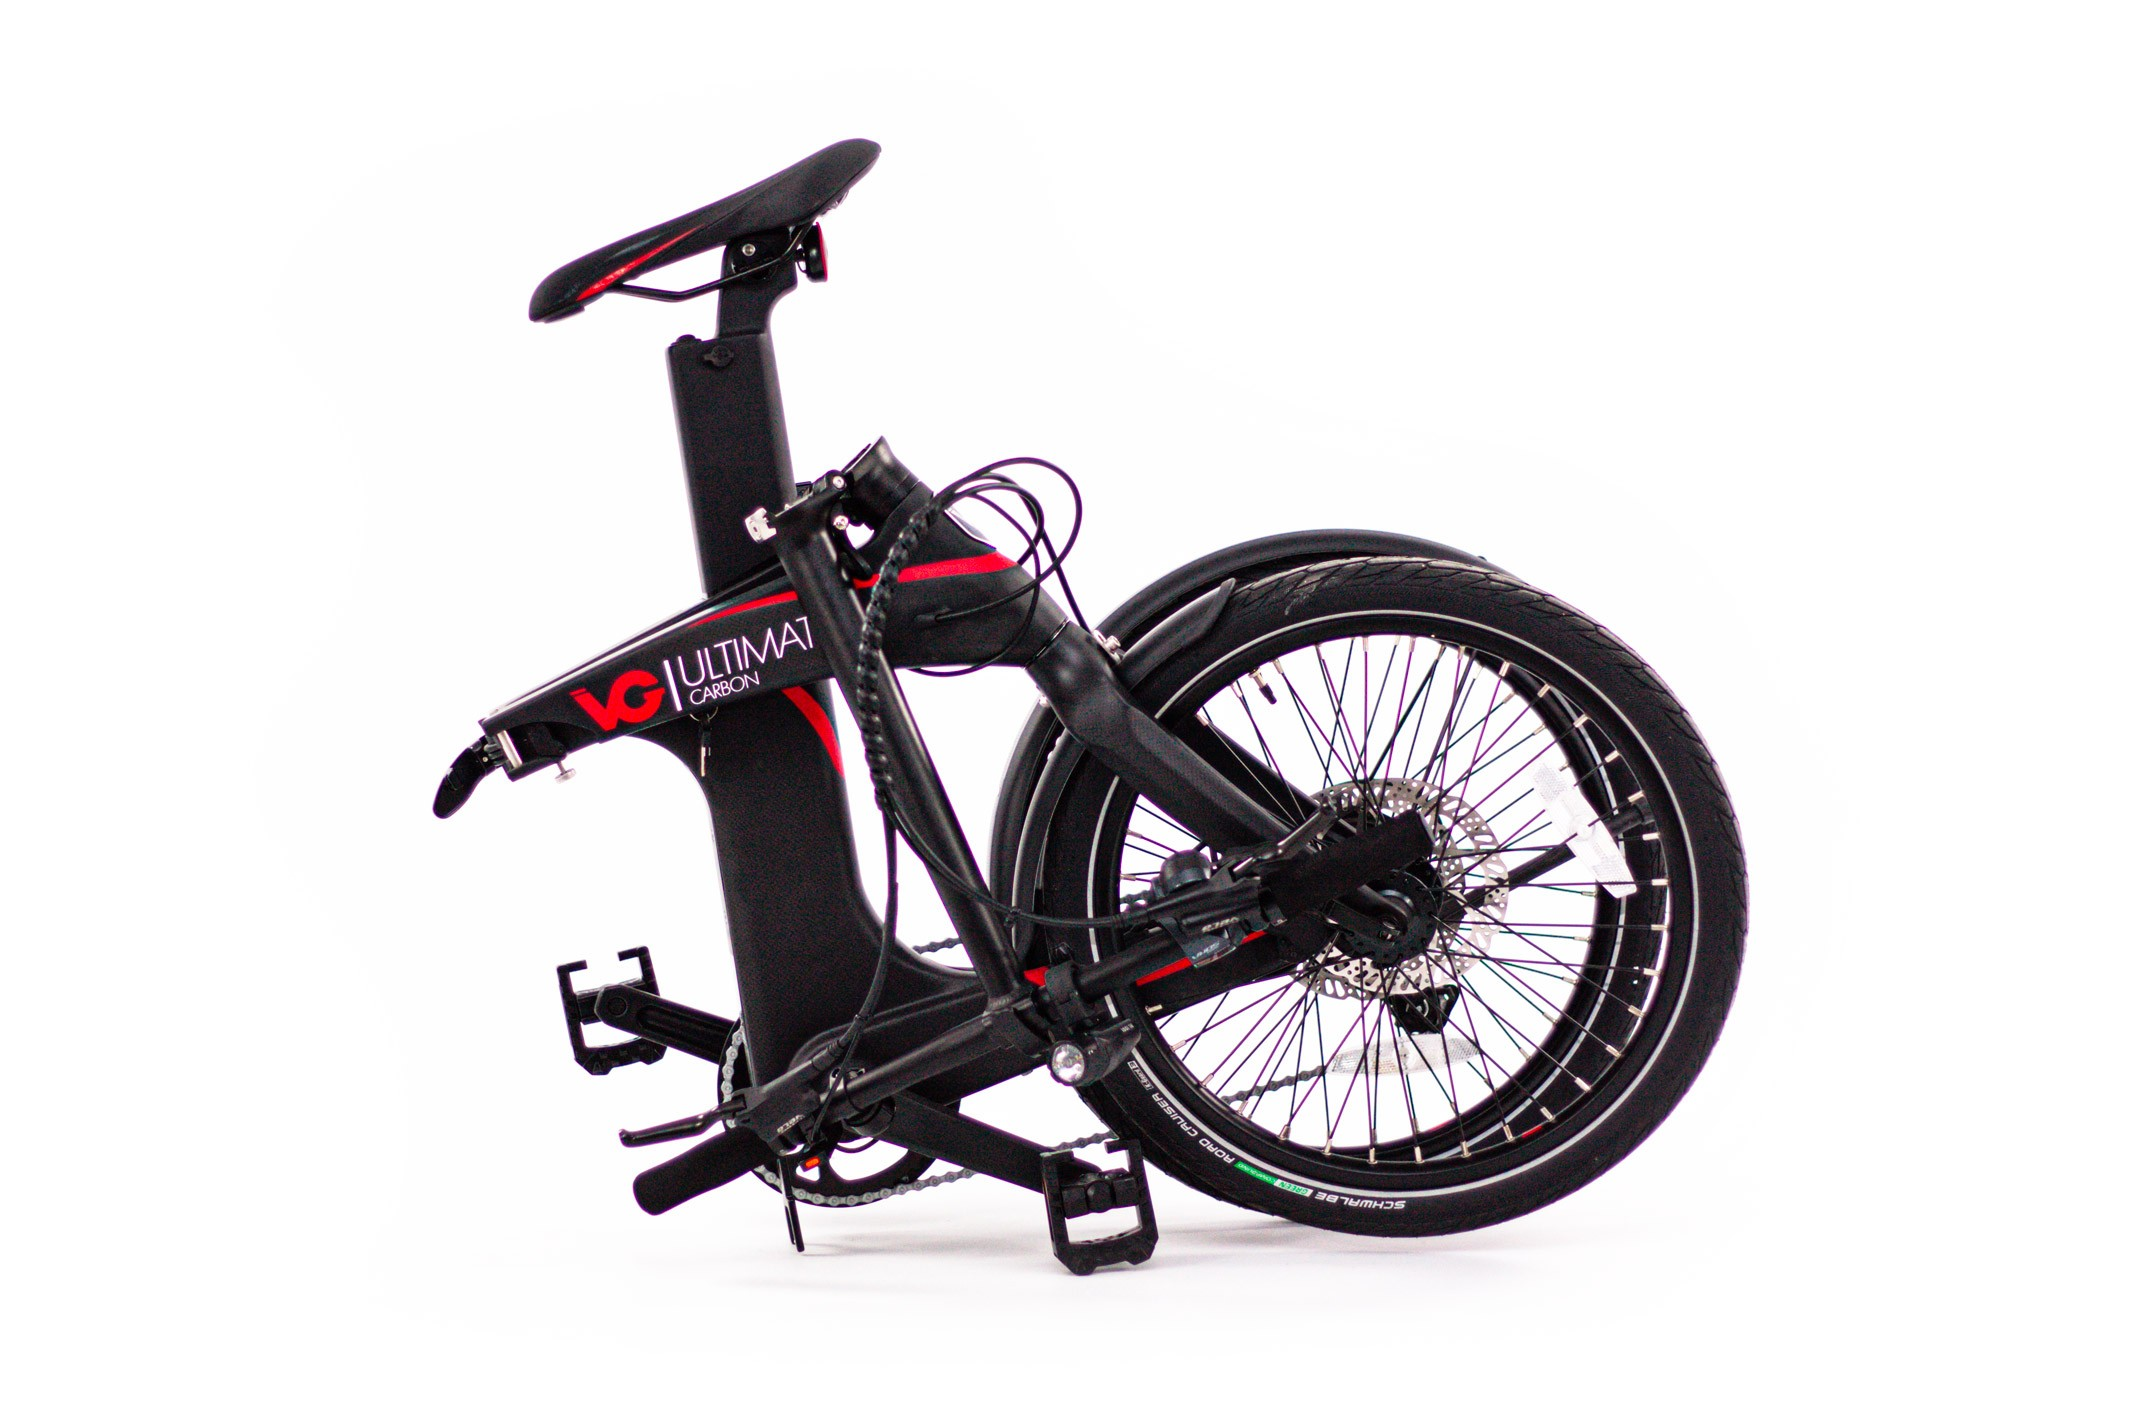 https://w8w5m3f8.stackpathcdn.com/22822/velo-electrique-pliant-vg-bikes-ultimate-carbon-378wh.jpg